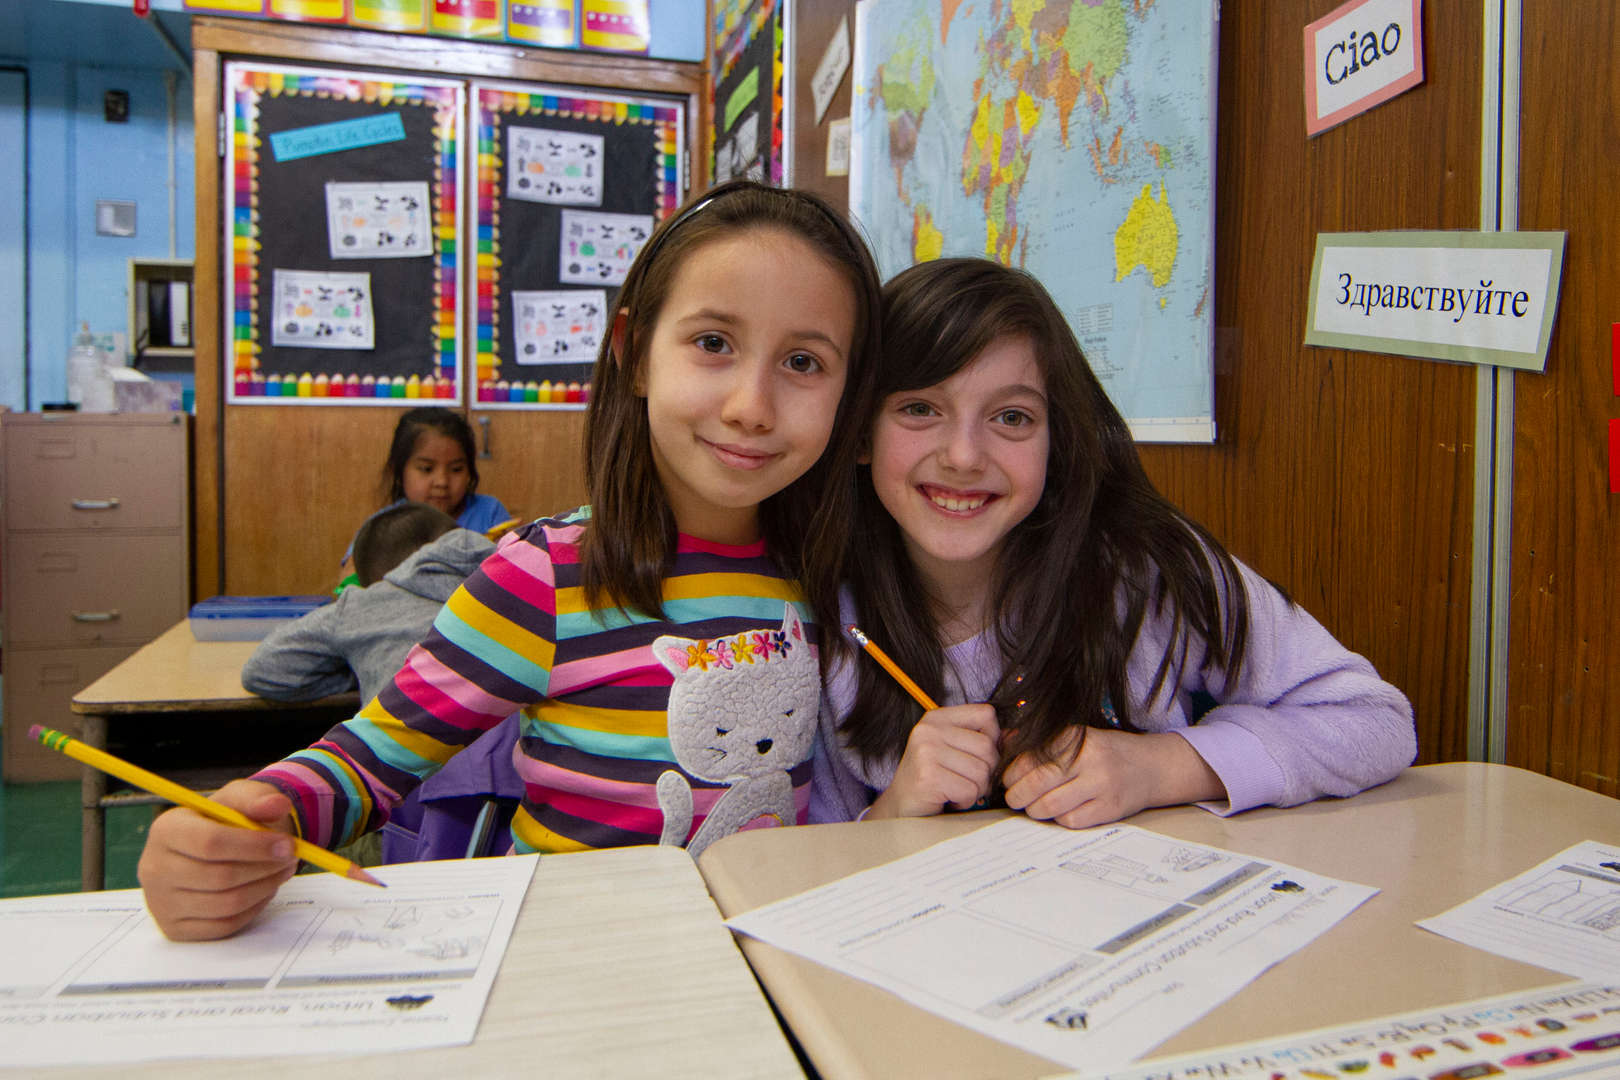 Girls working together on class project